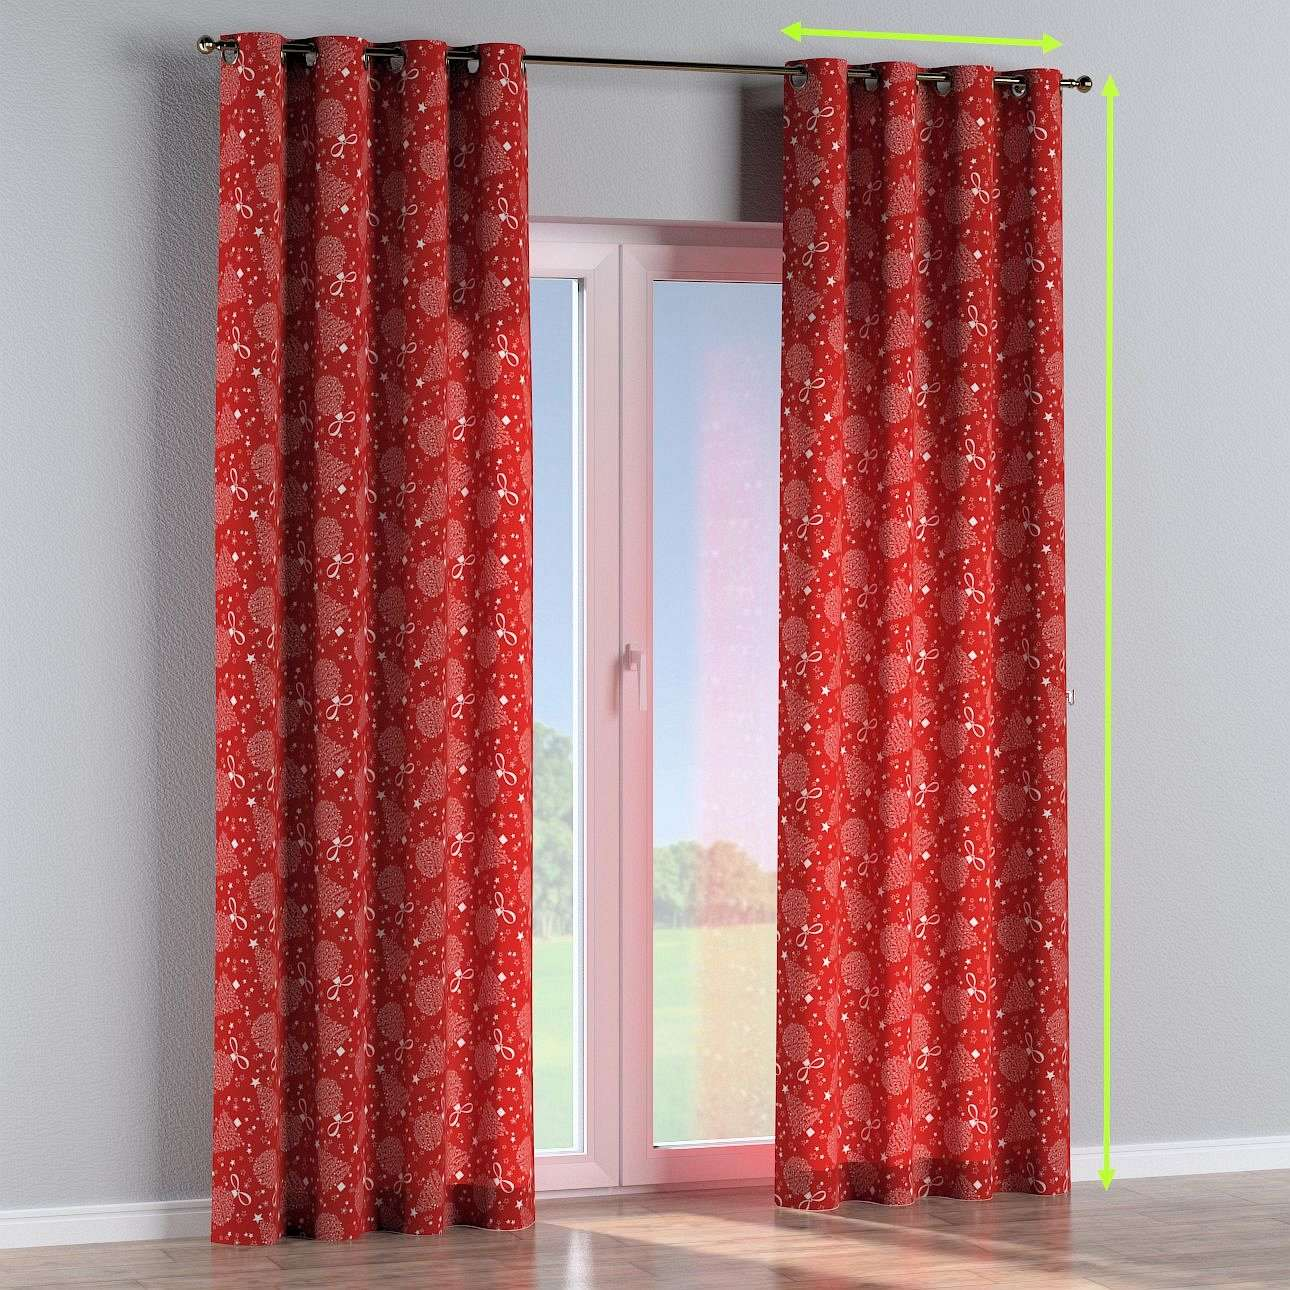 Eyelet curtains in collection Christmas, fabric: 629-32